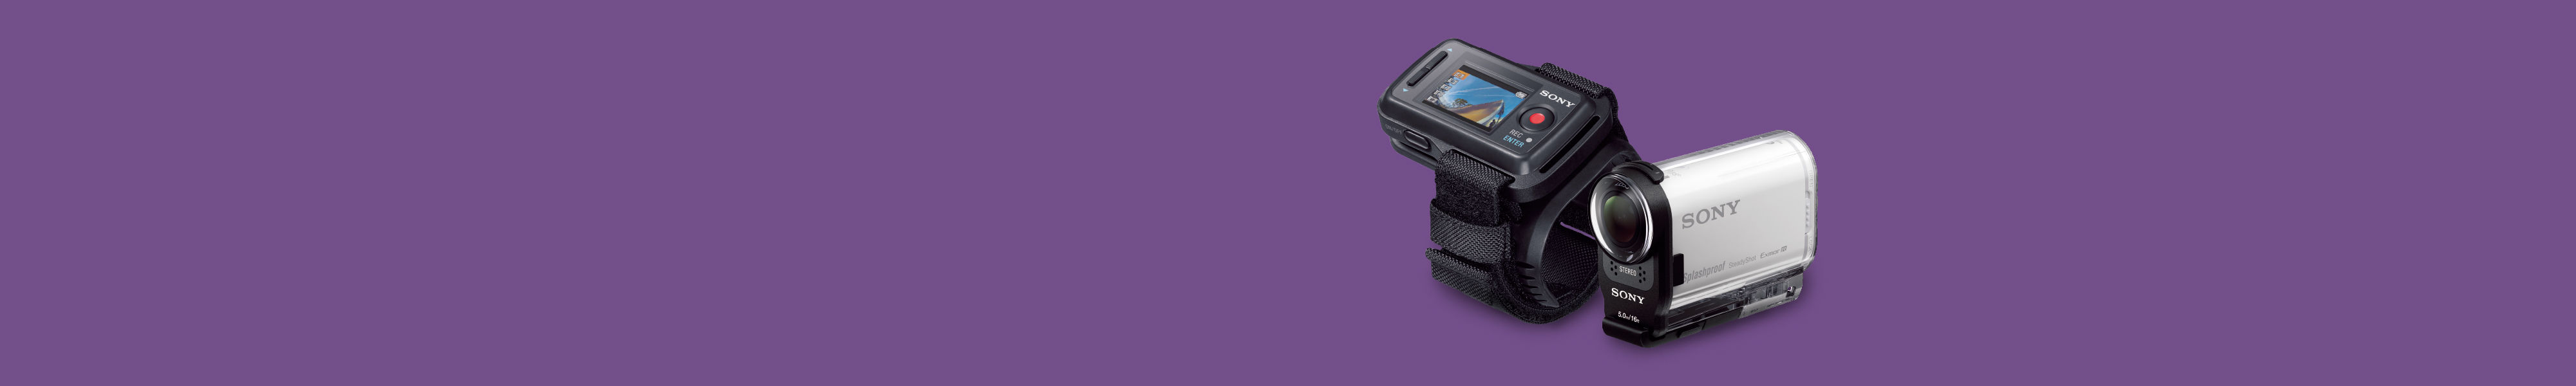 Sony Action Camera Accessories